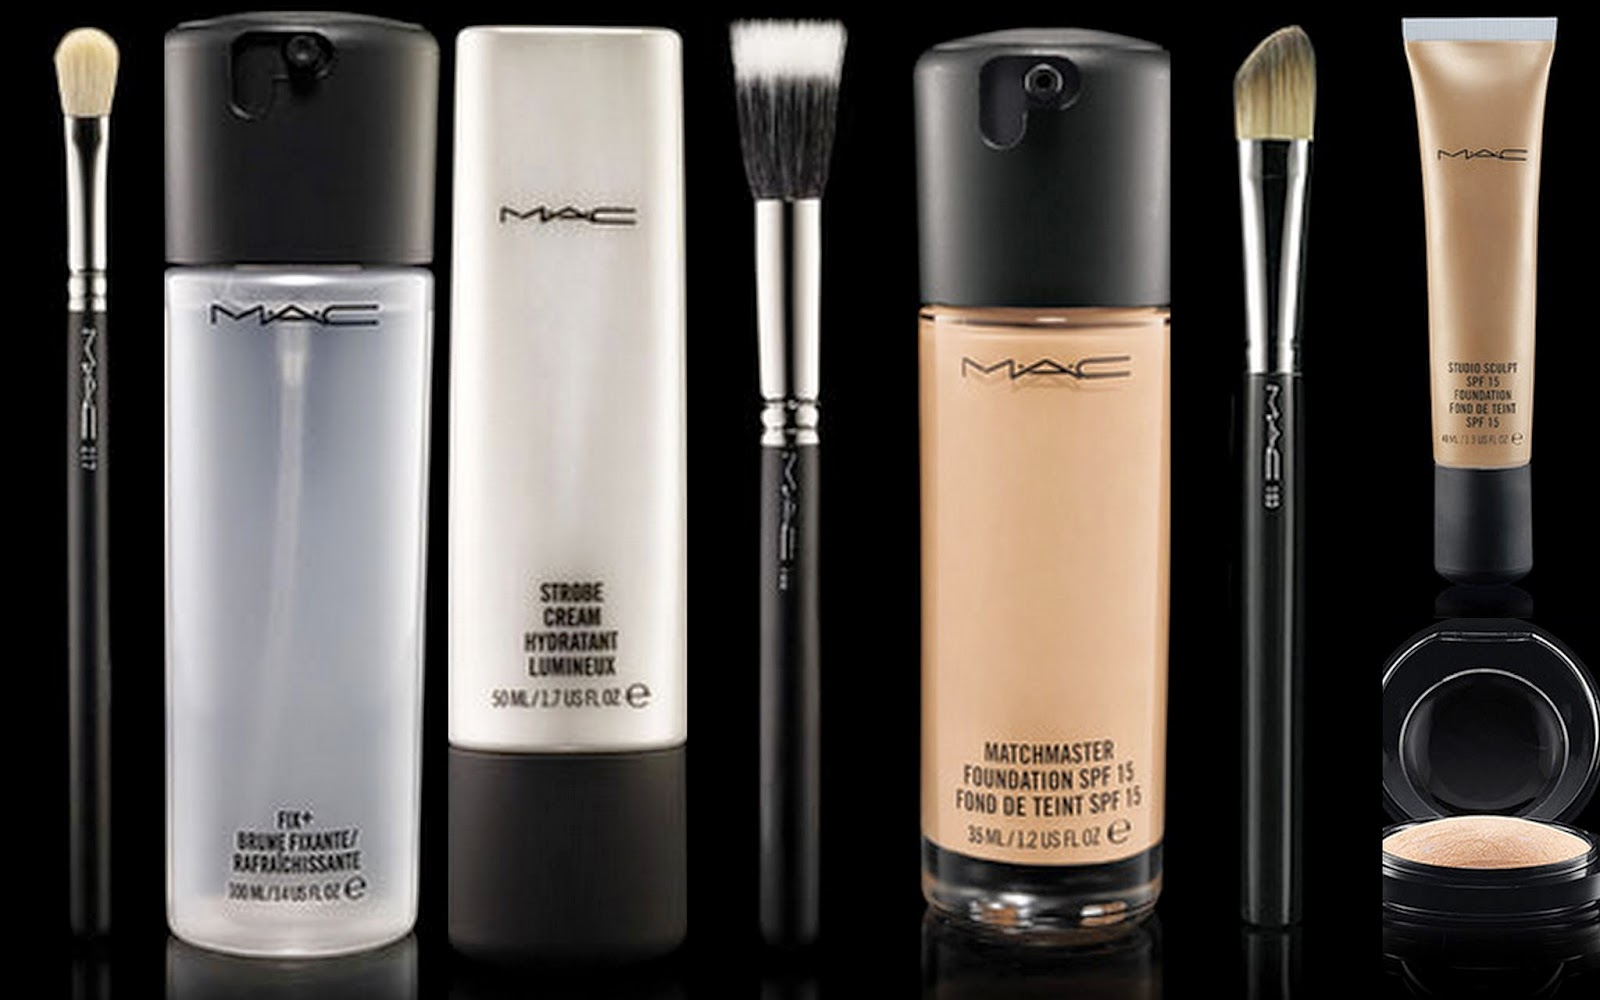 mac wishlist makeup skincare